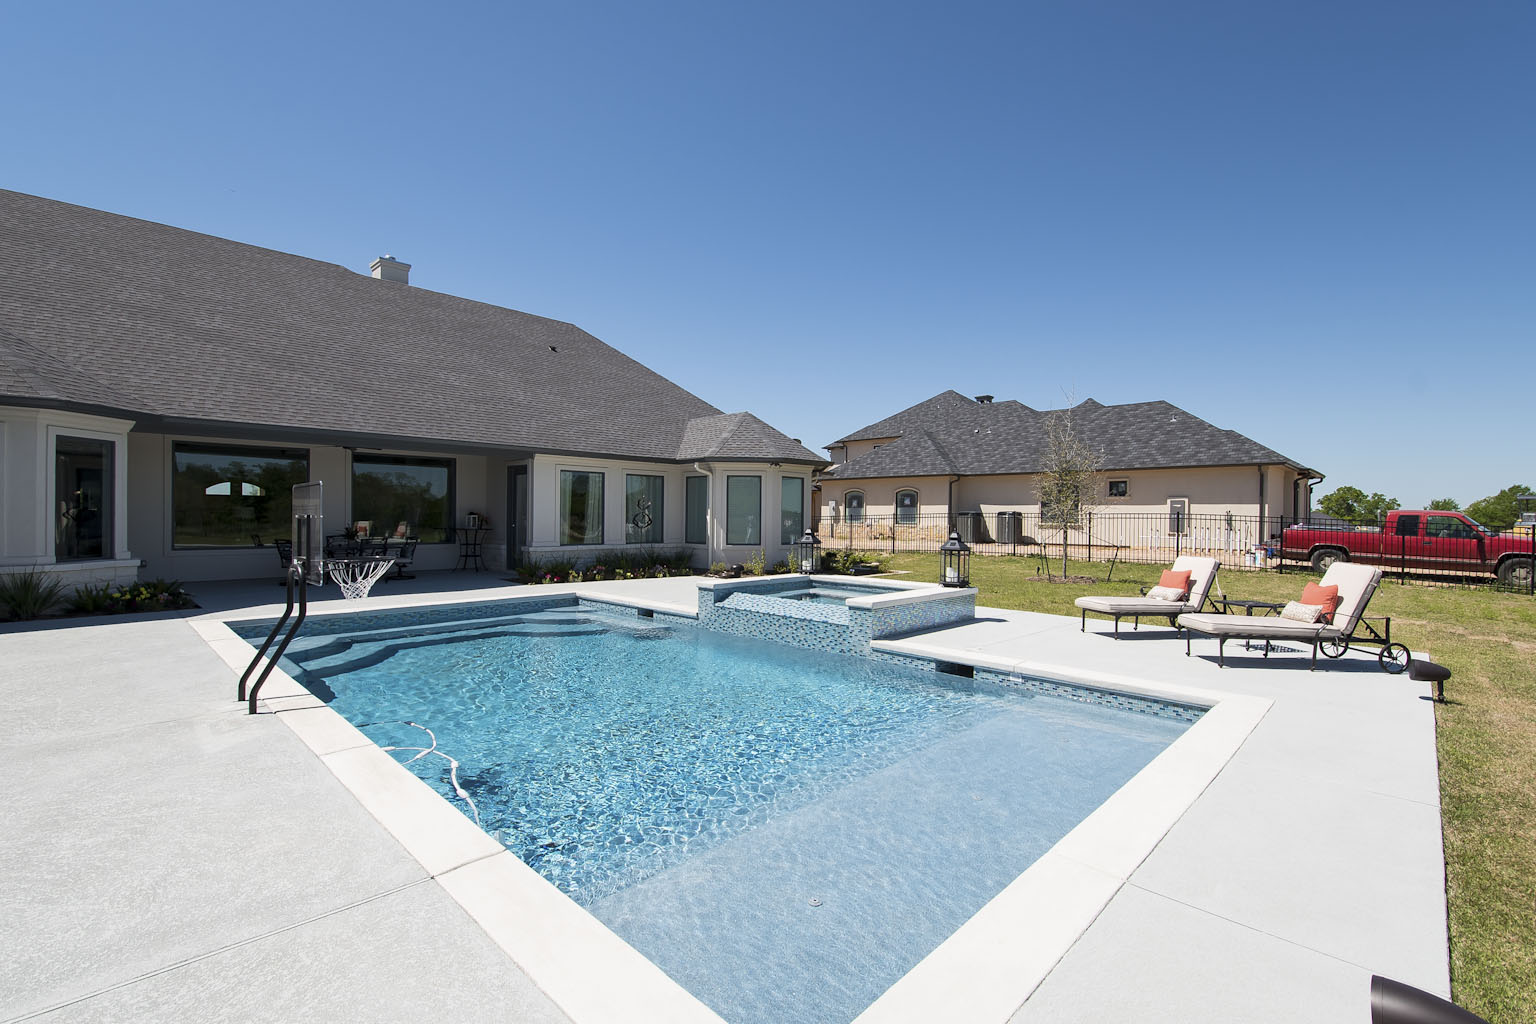 100 Faqs On Building A Pool Bryan College Station Pools